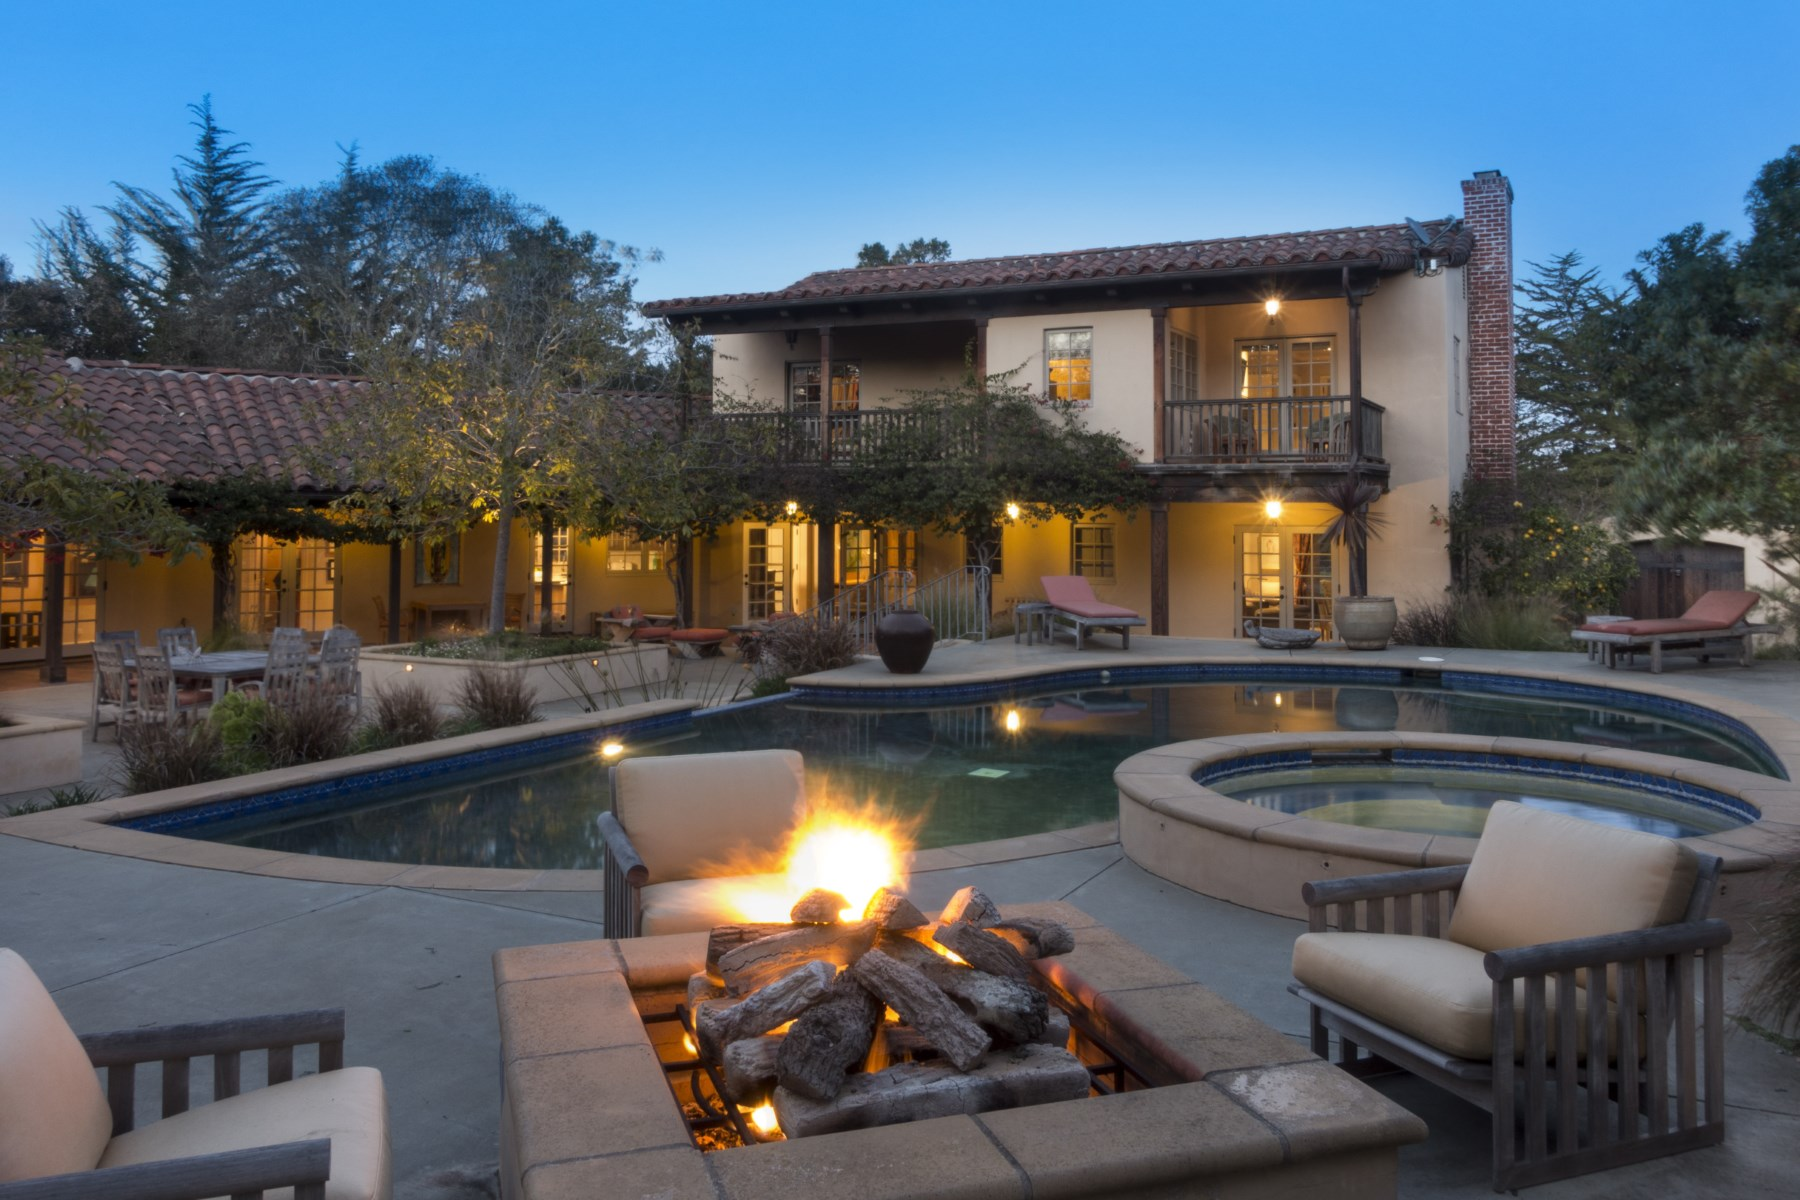 United States Monterey Graceful Spanish Colonial Estate For Sale On Propgoluxury